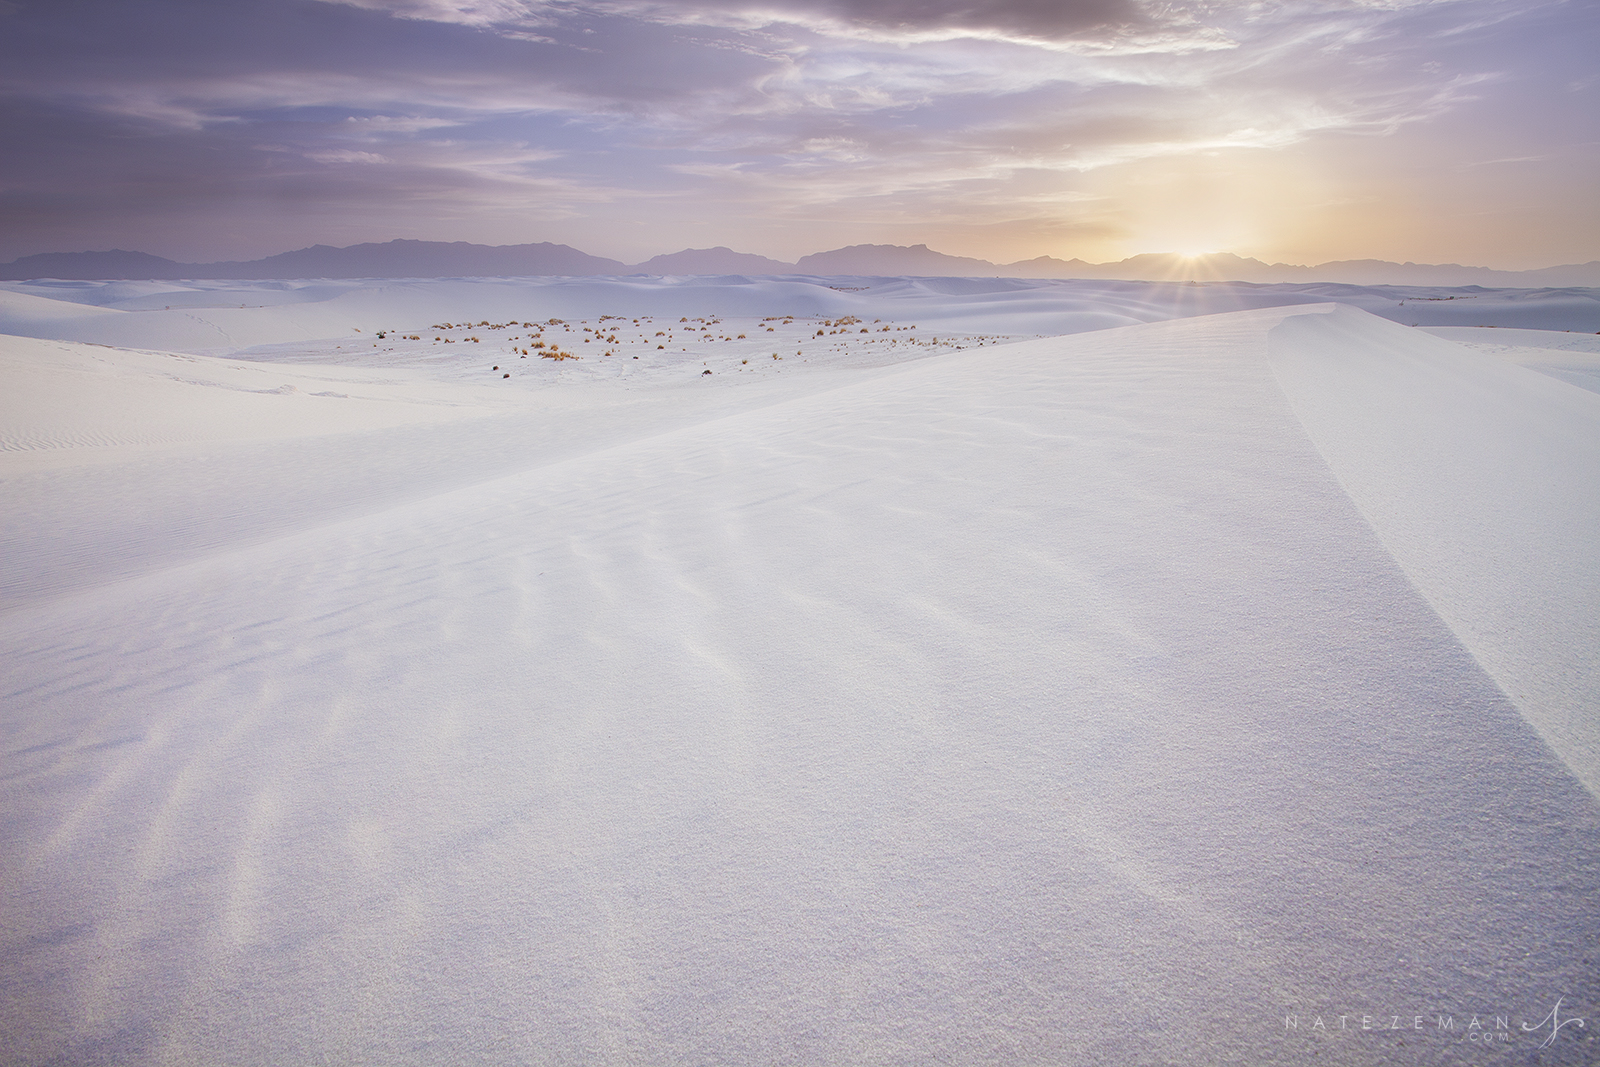 white sands, white sands national monument, new mexico, land of enchantment, sand dunes, sunset, photography, white, sand, gypsum, photo